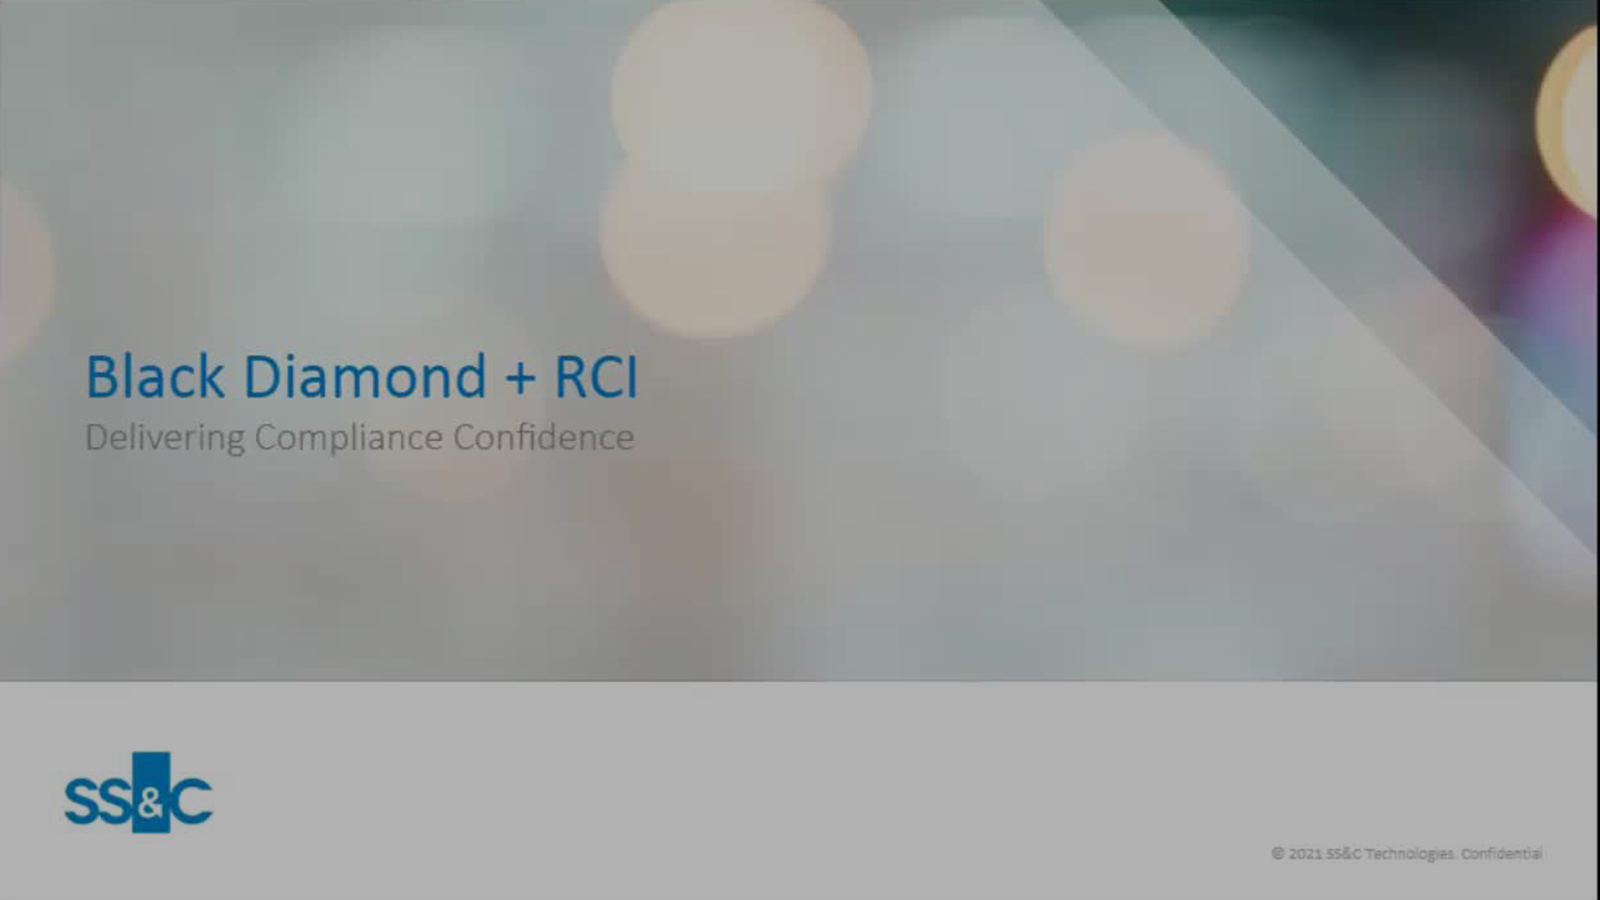 poster image for Black Diamond + RCI: Delivering Compliance Confidence